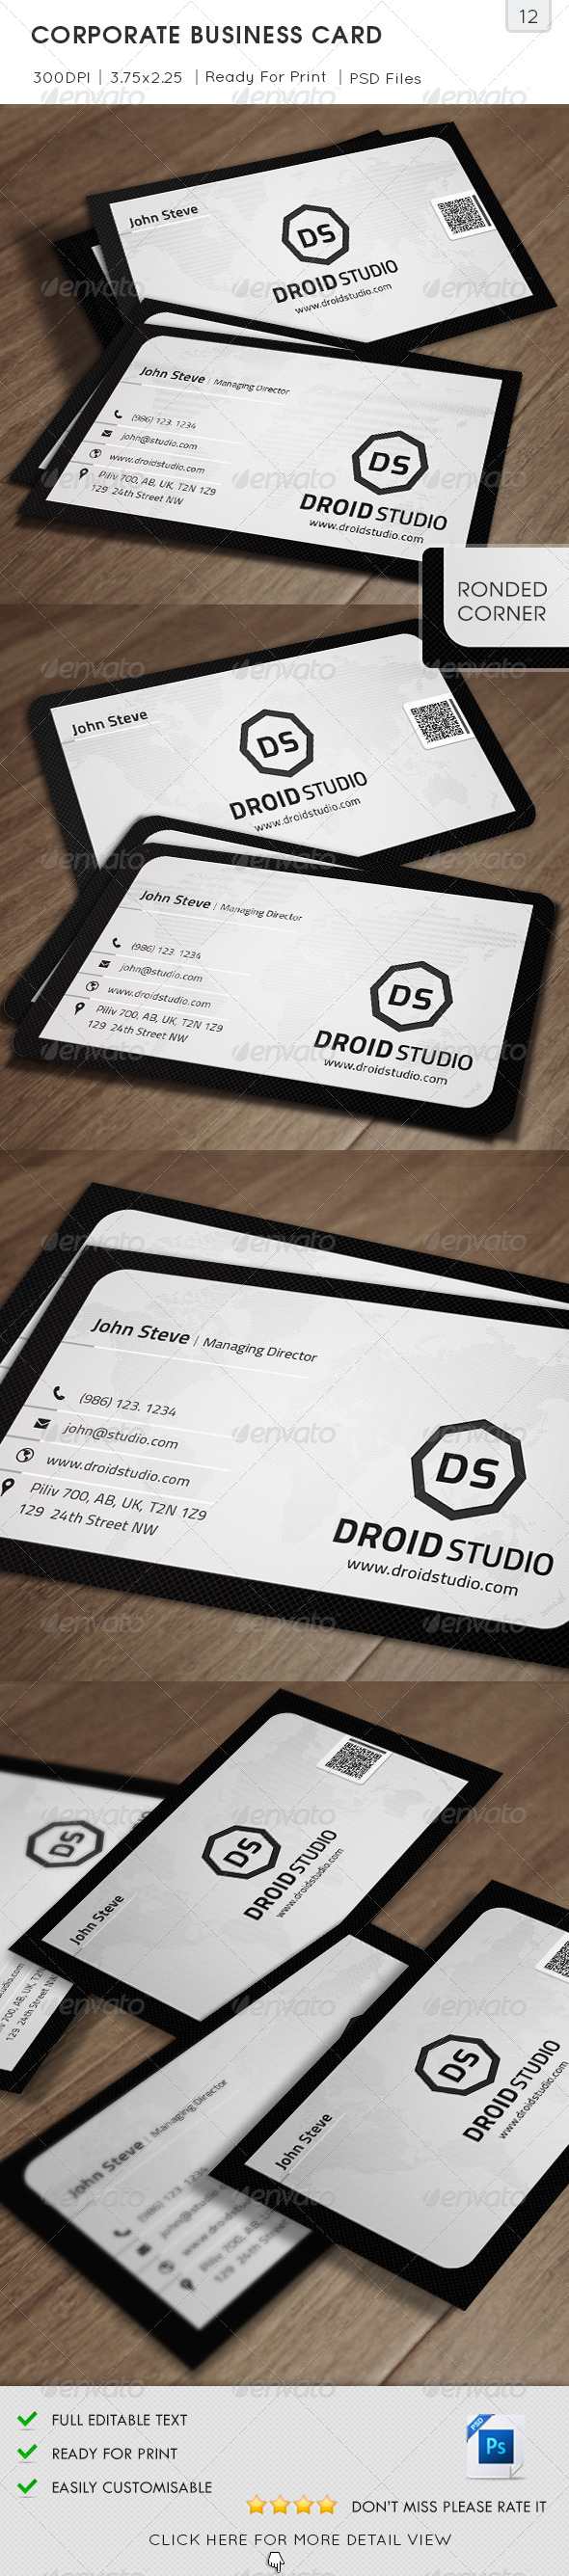 GraphicRiver Corporate Business Card v12 5602900